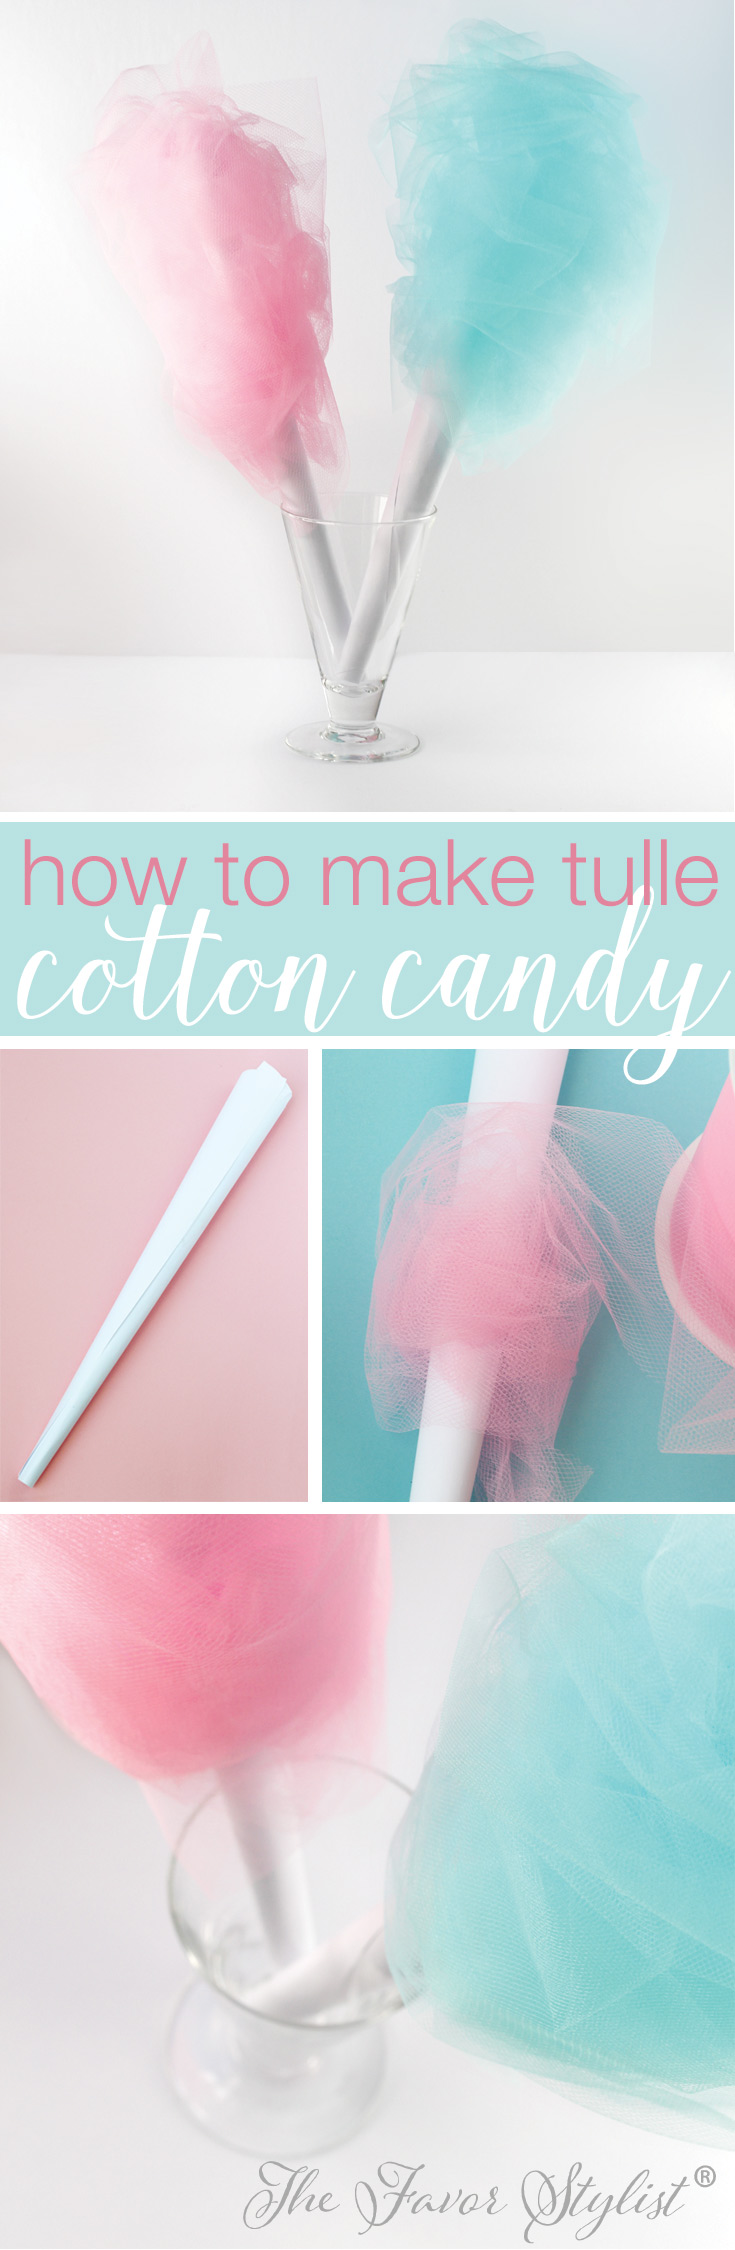 how to make tulle cotton candy